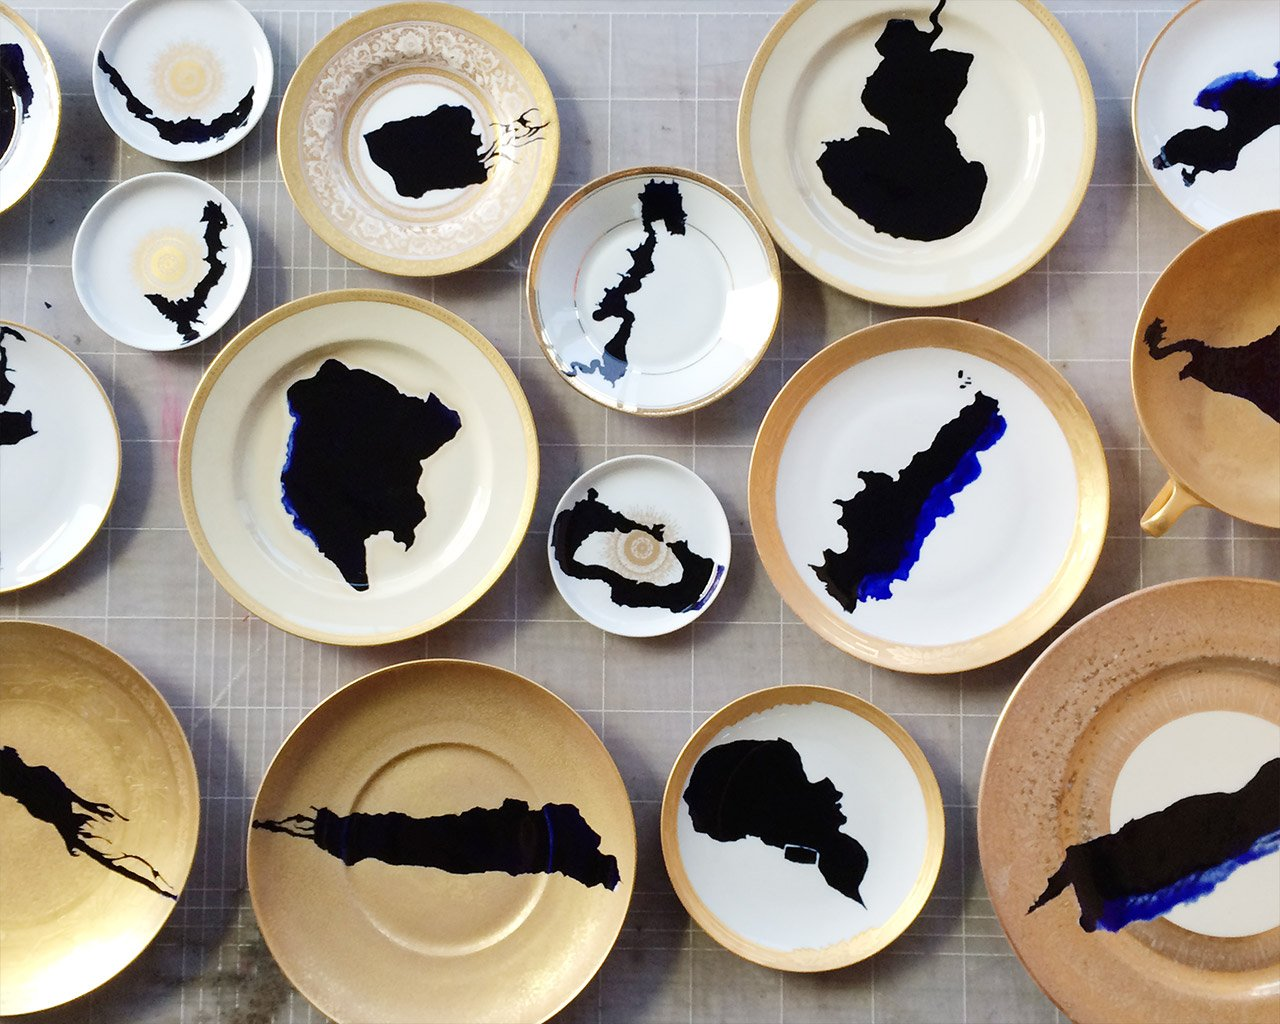 The resulting Forbidden Lakes plates!